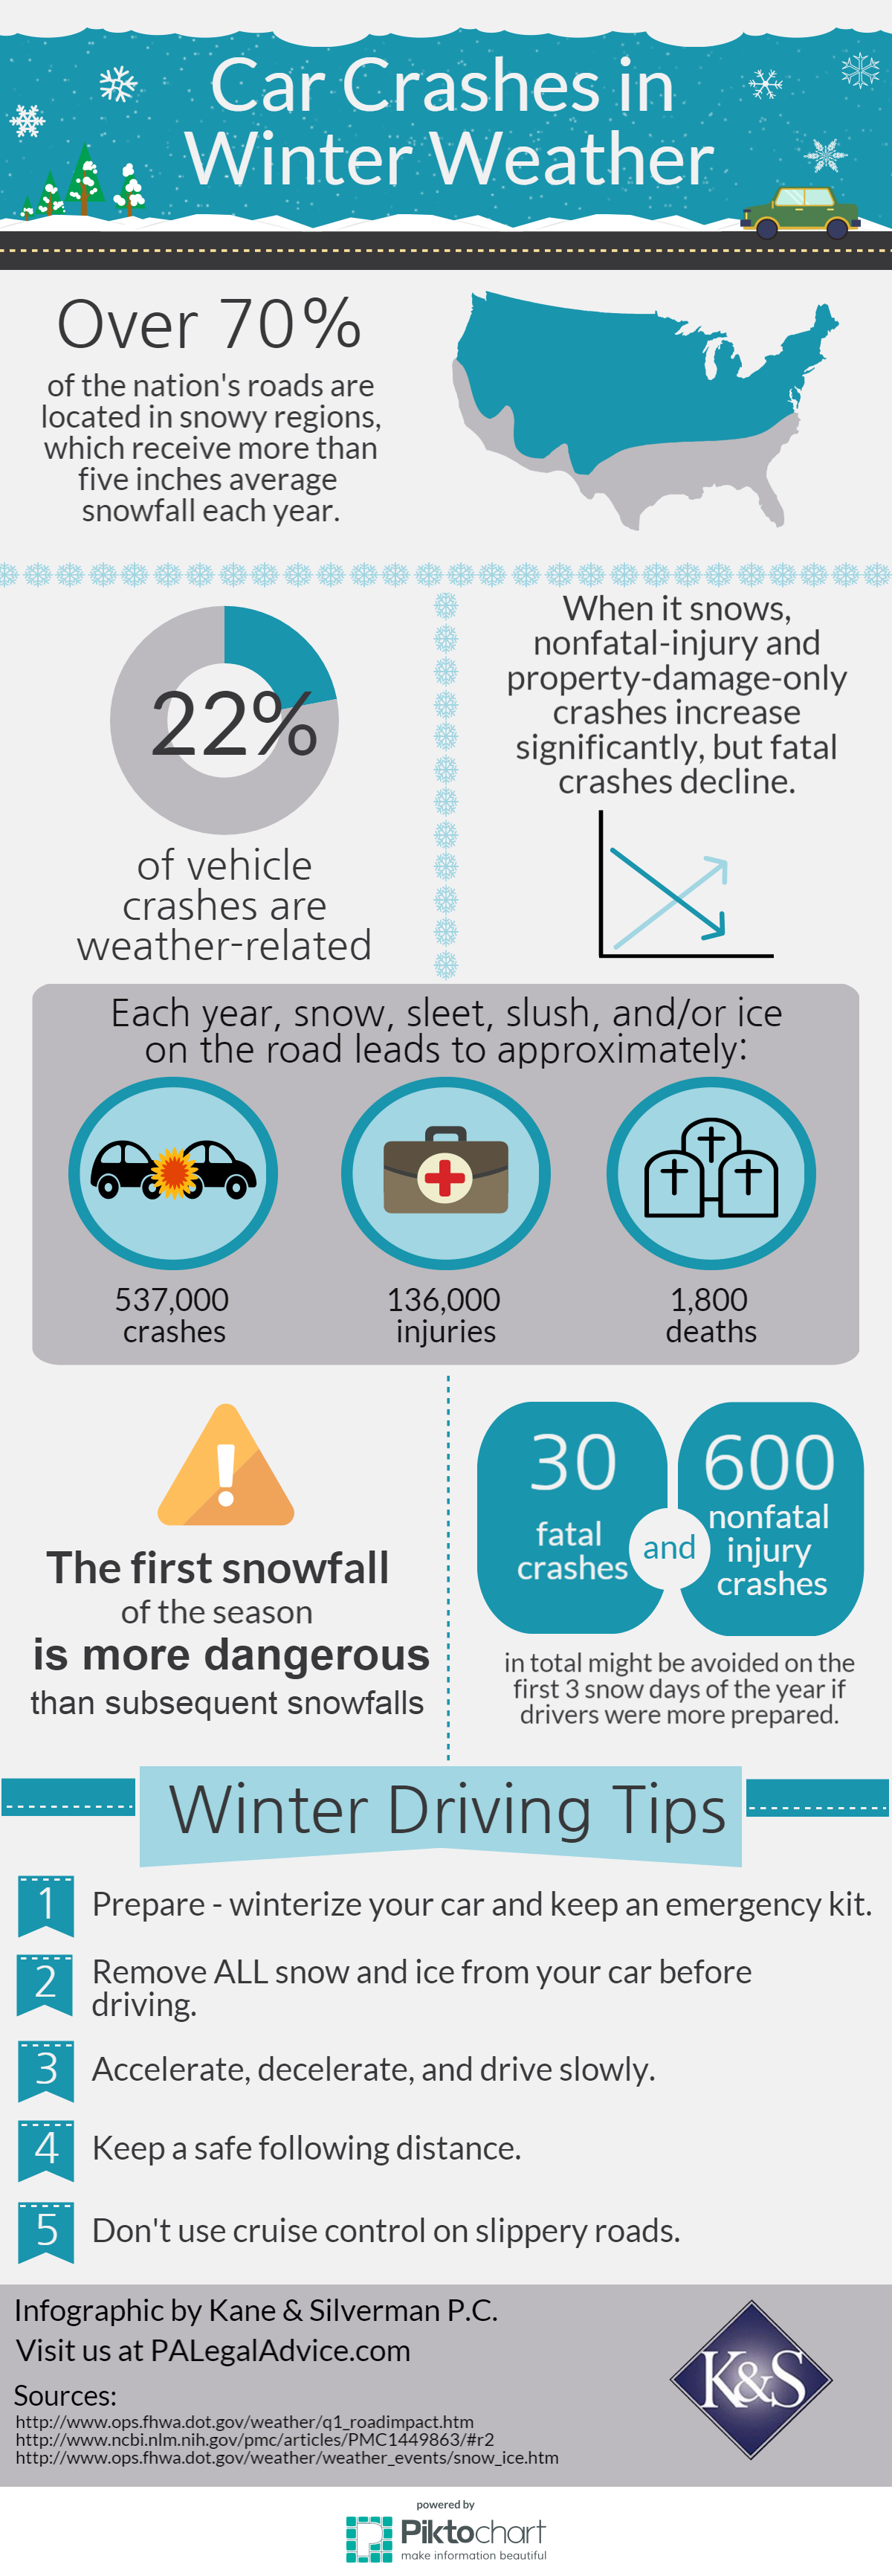 Car-Crashes-in-Winter-Weather